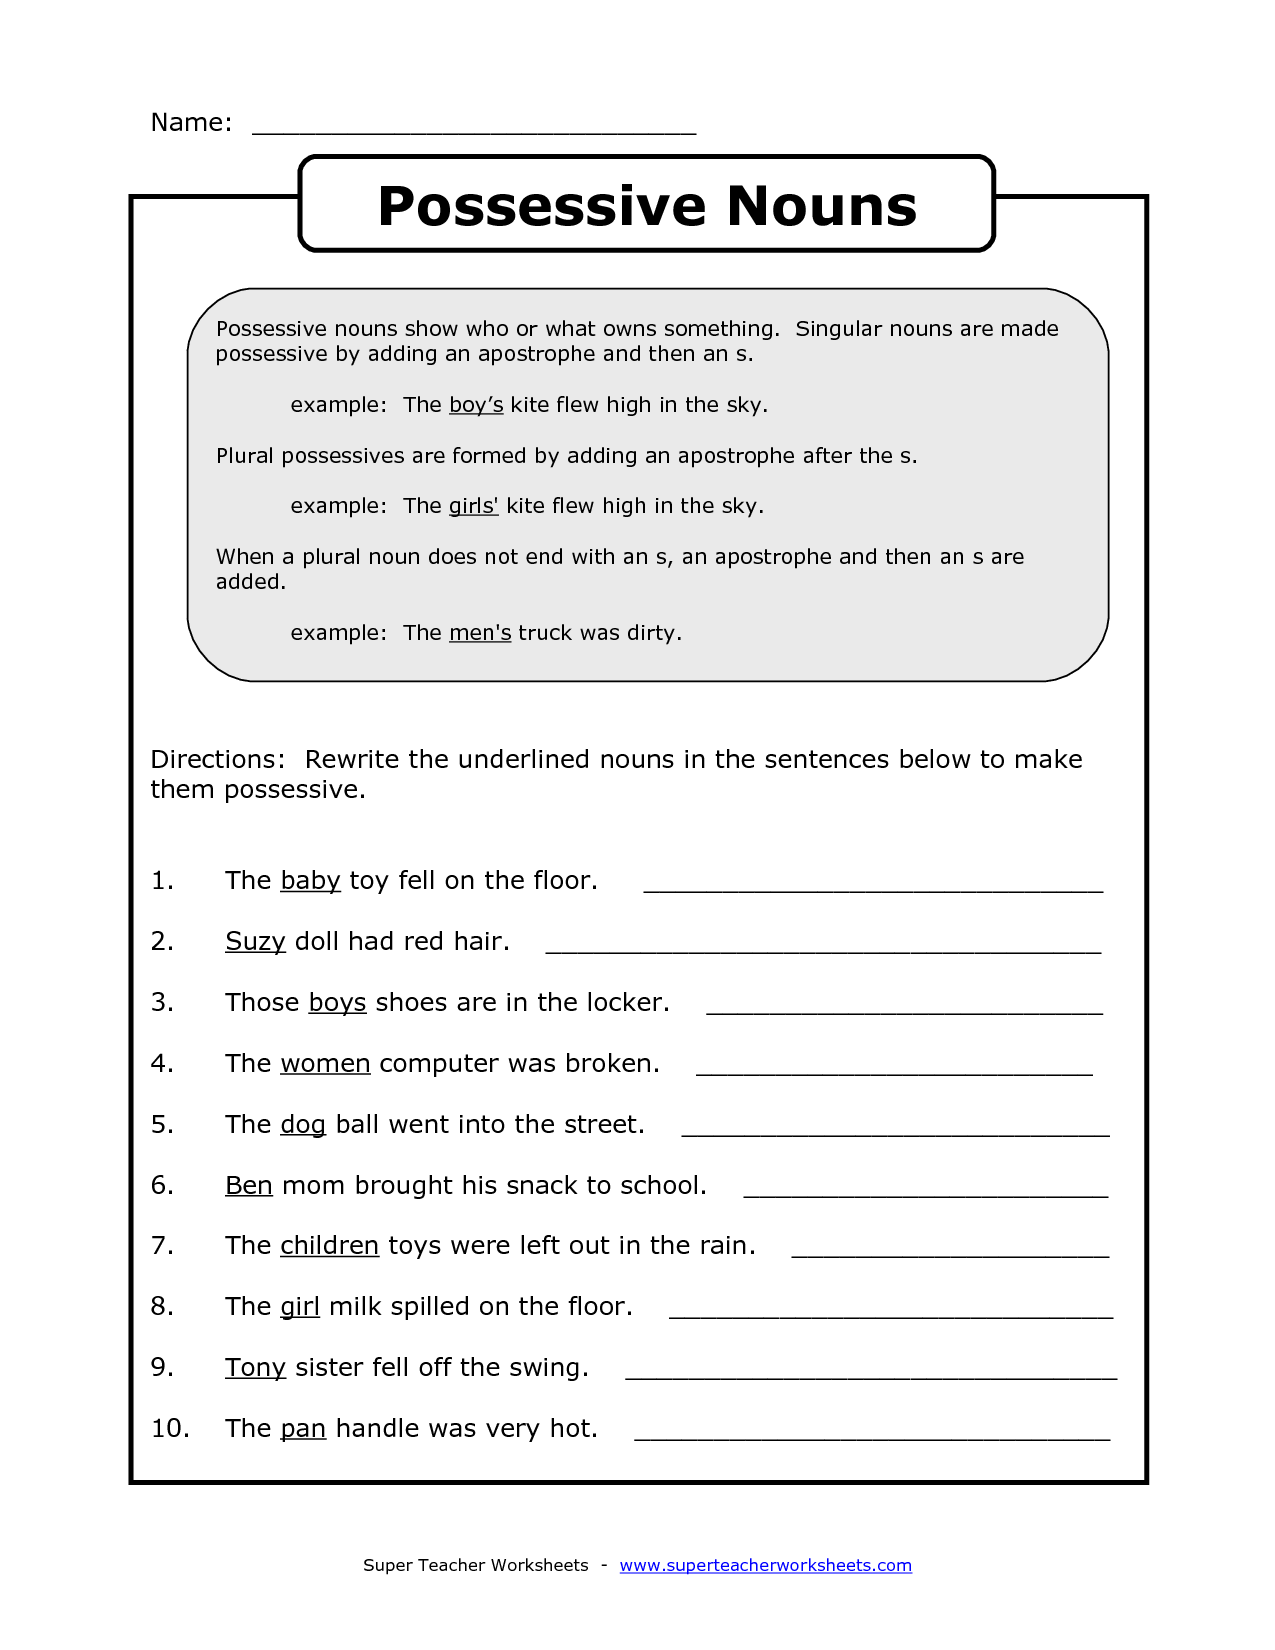 posessive nouns Google Search – Possessive Pronouns Worksheets